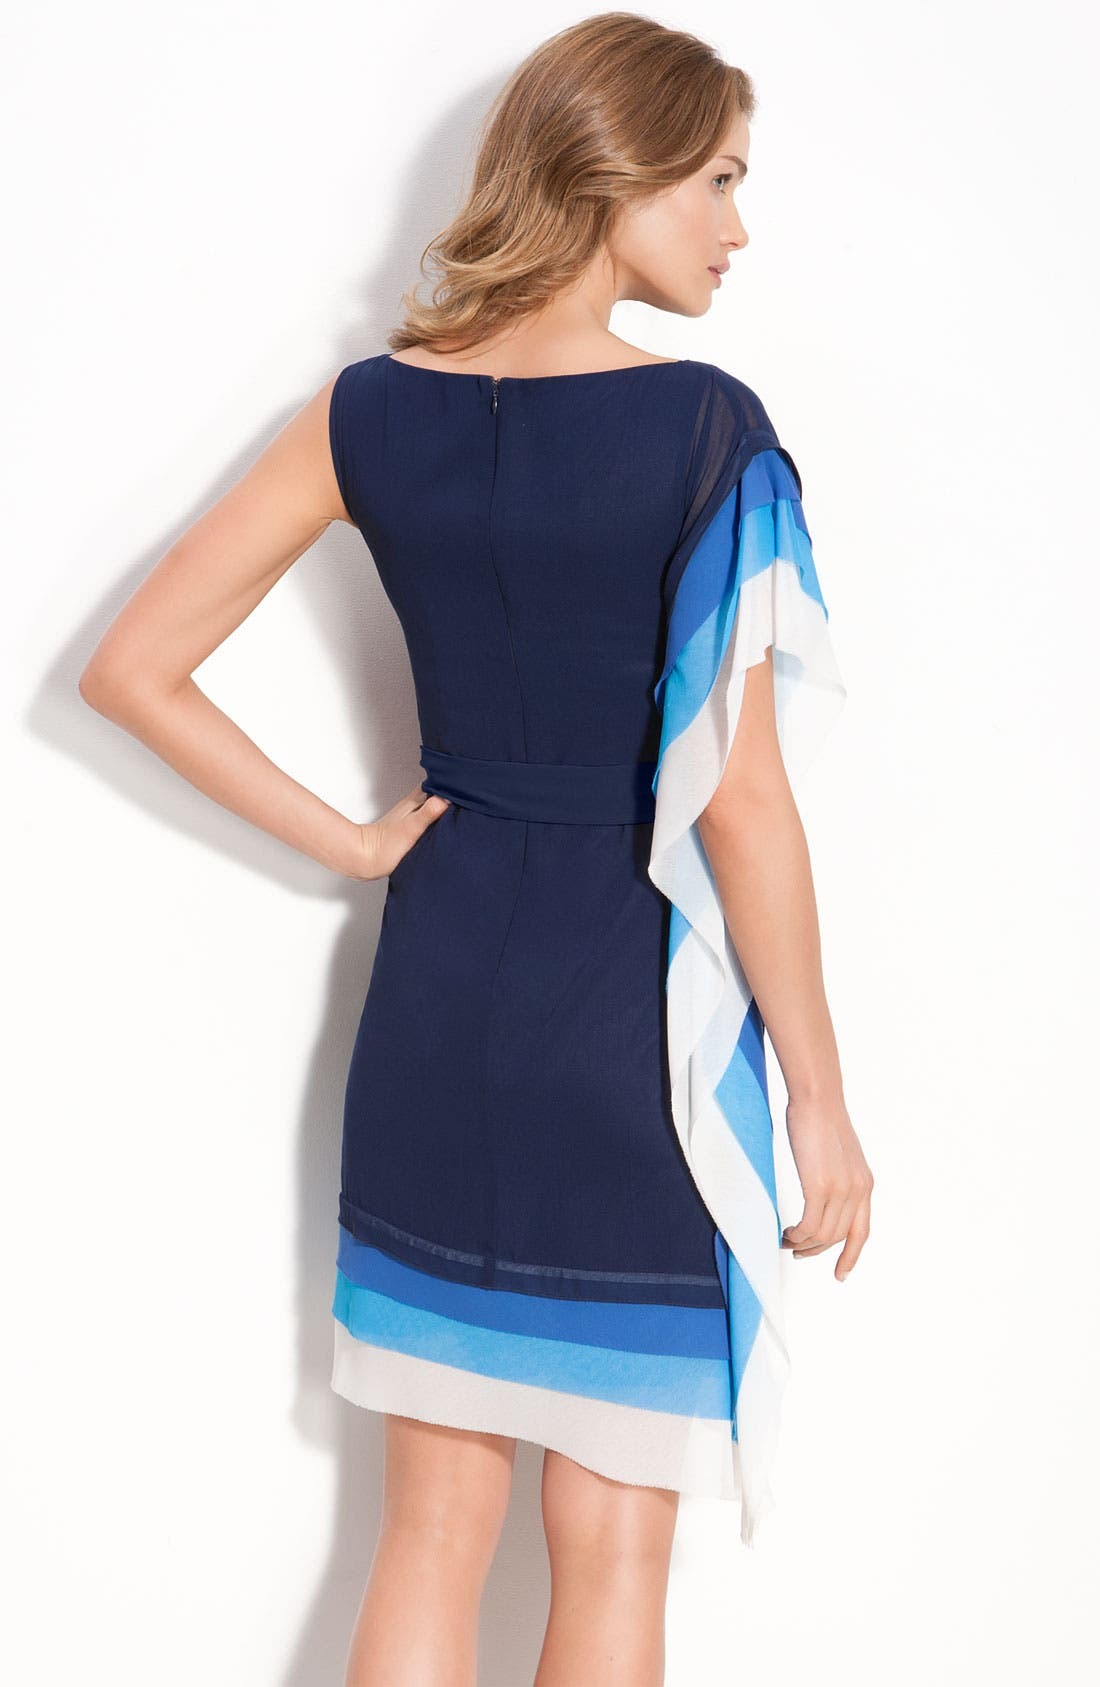 VINCE CAMUTO,                             Asymmetric Layered Tier Dress with Sash Tie,                             Alternate thumbnail 3, color,                             405